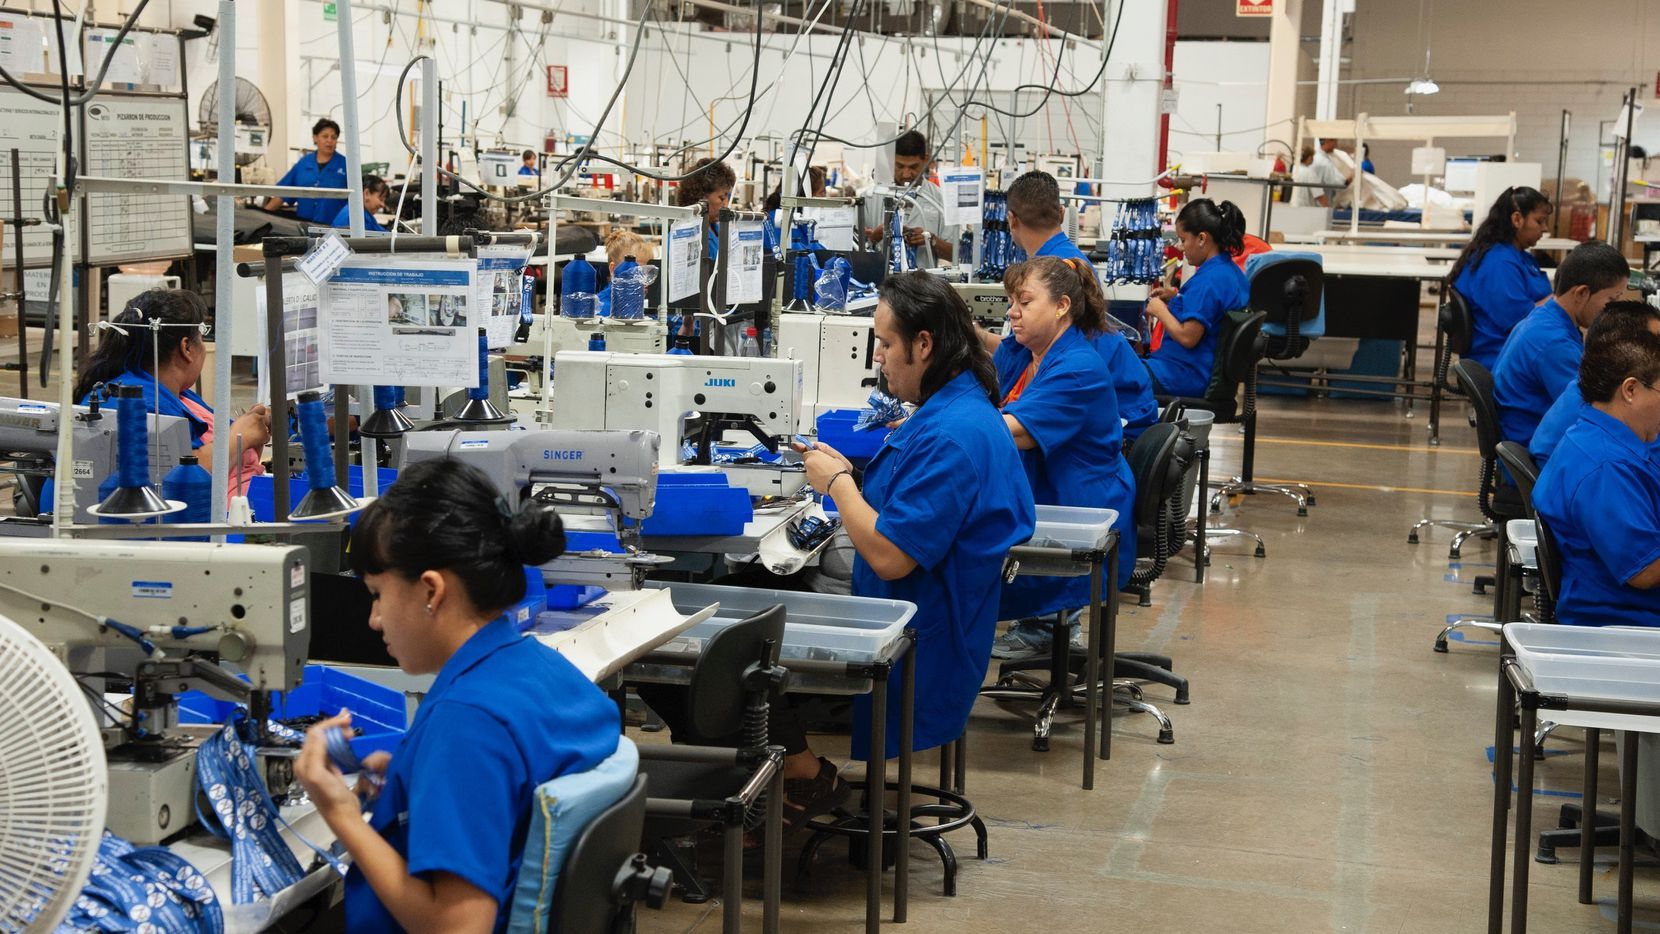 Workers inside an MFI International plant in Ciudad Juarez, Mexico, make fabrics in February 2020. MFI is one of the factories along the border switching to manufacturing medical supplies for the fight against coronavirus.